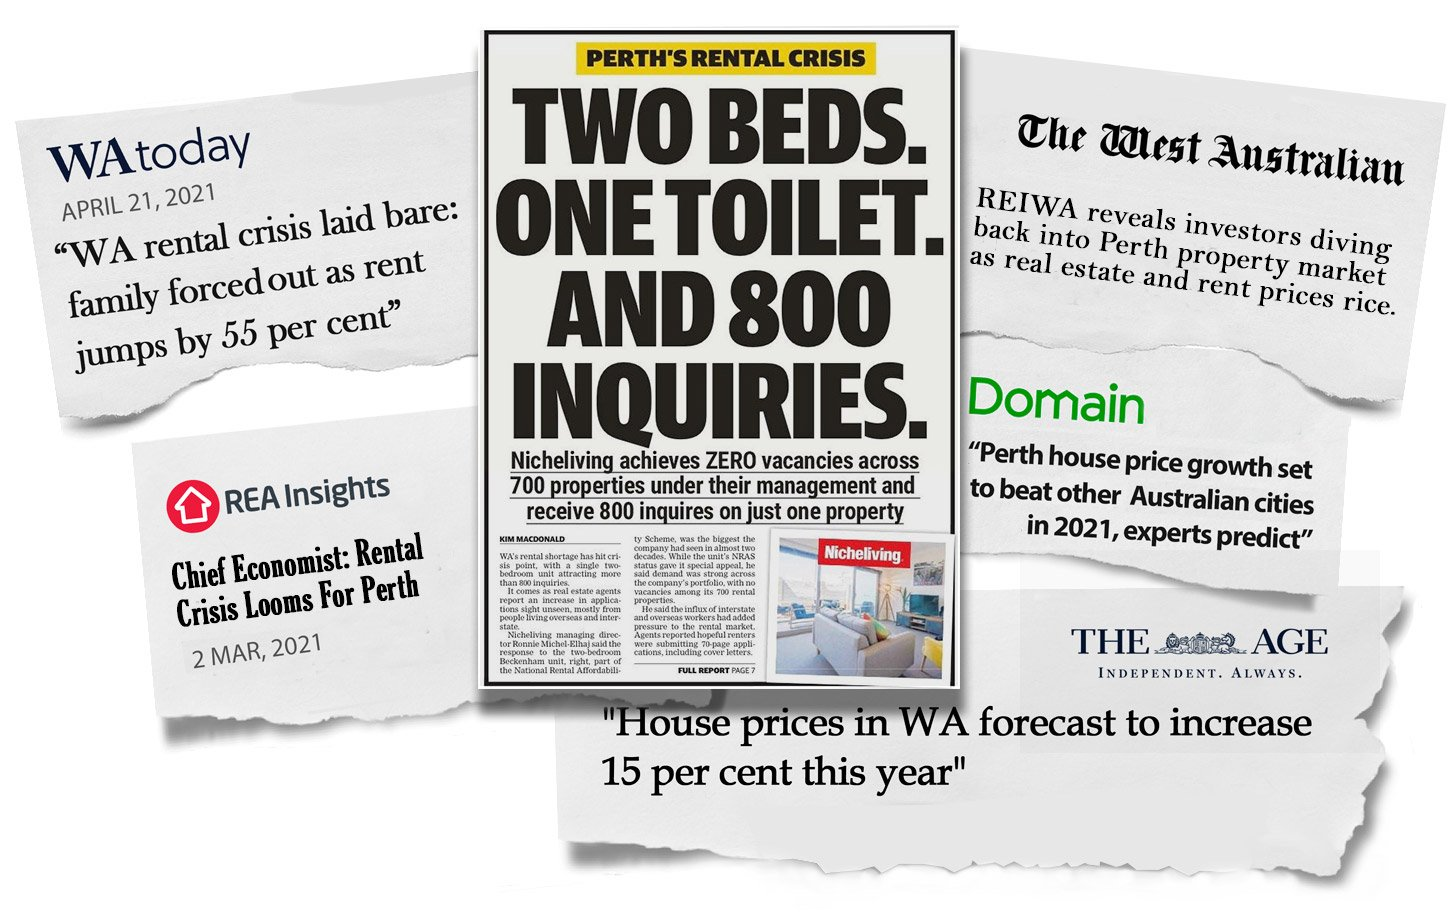 The rental crisis news clipping